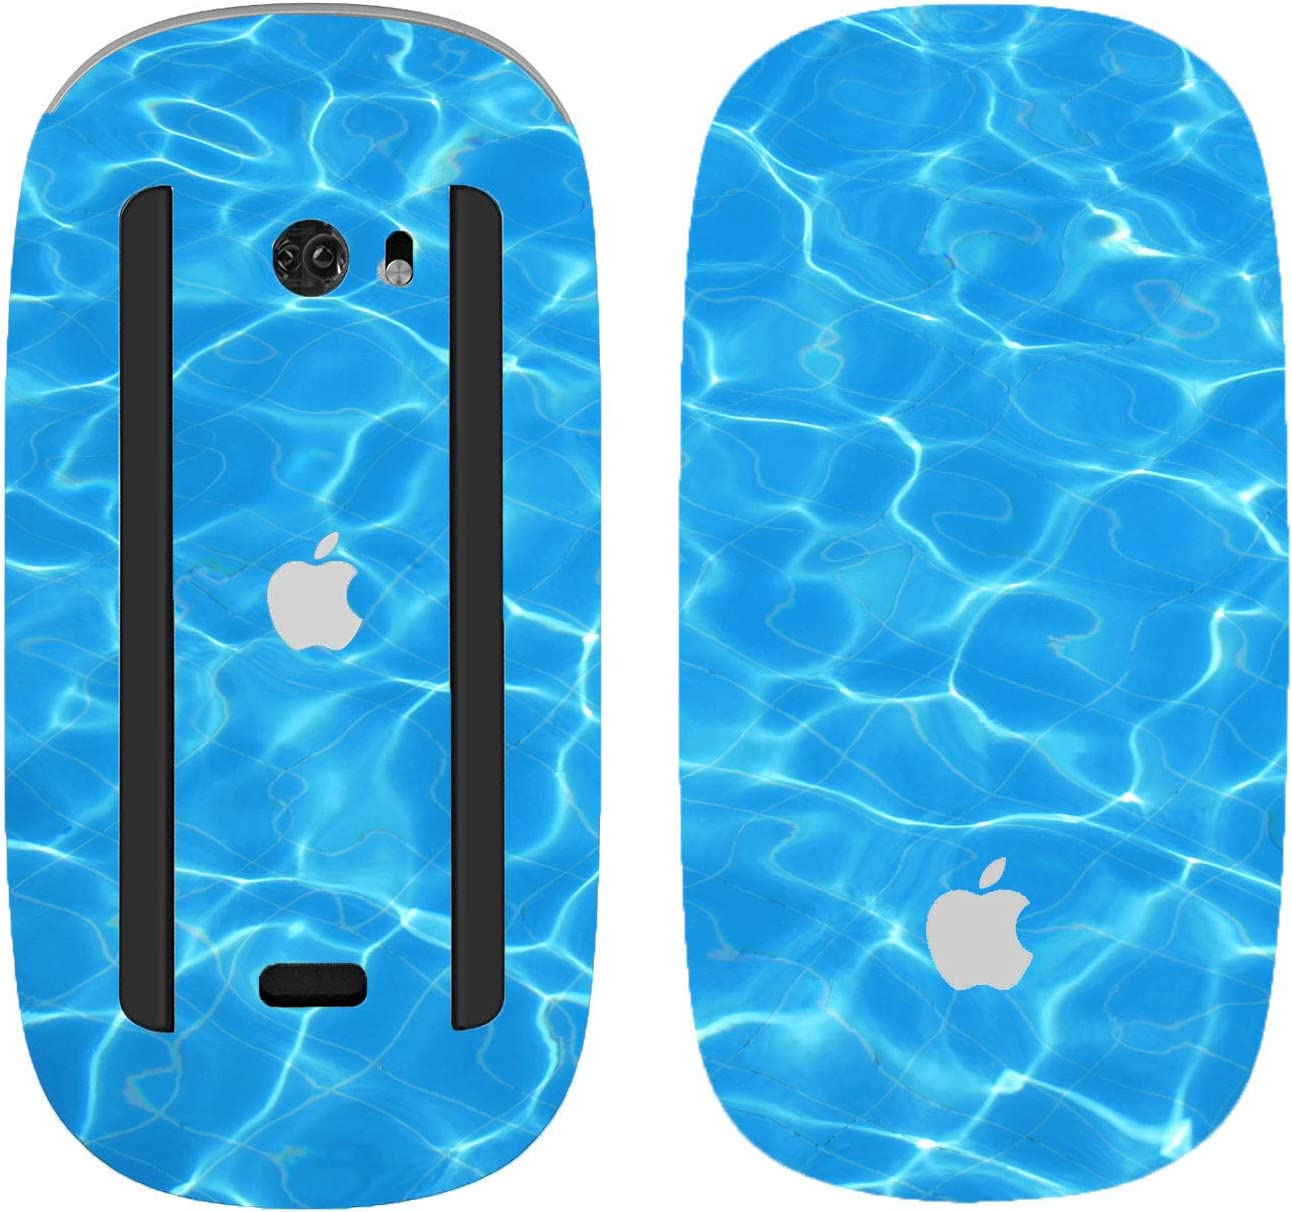 with Multi-Touch Surface Design Skinz Premium Vinyl Decal for The Apple Magic Mouse 2 Black and Teal Textured Marble 2 Wireless, Rechargable